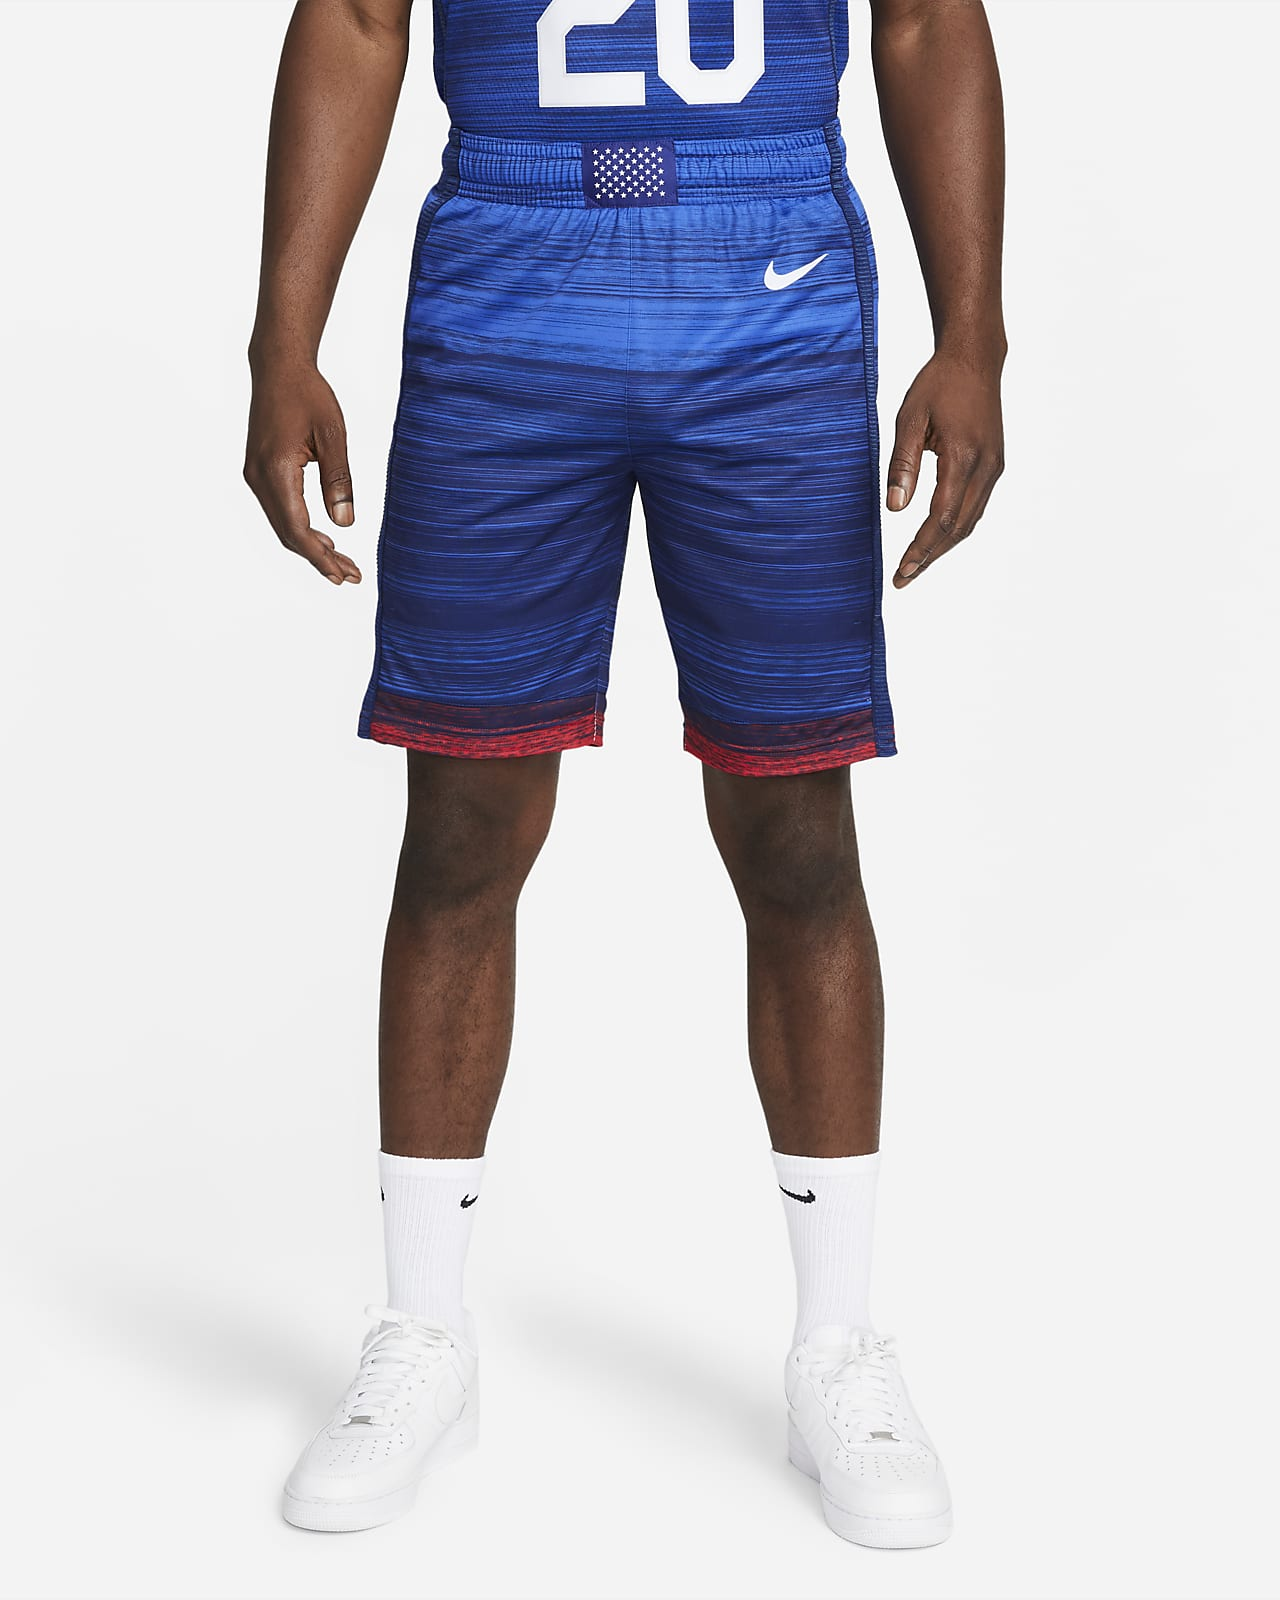 Nike Team USA Authentic (Road) Men's Basketball Shorts